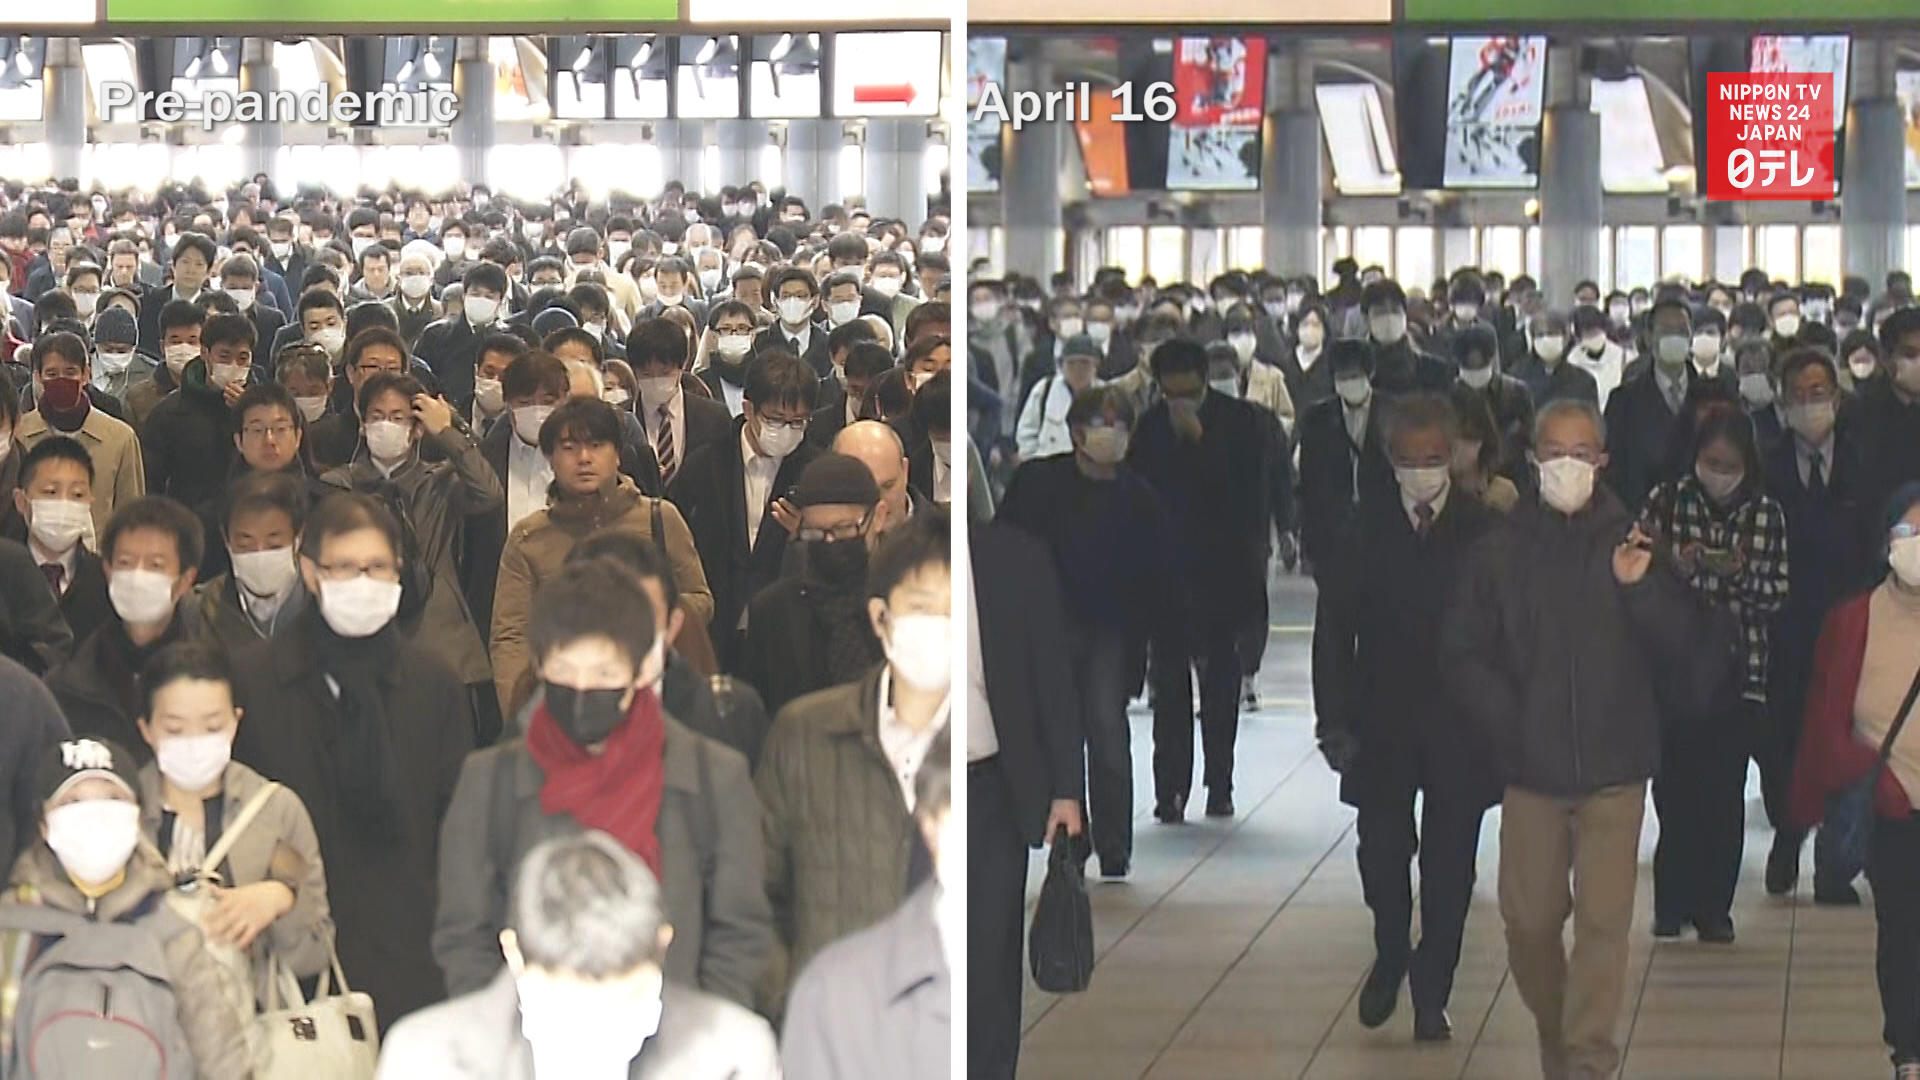 Flow of people down 50 to 70 percent in Tokyo from pre-pandemic